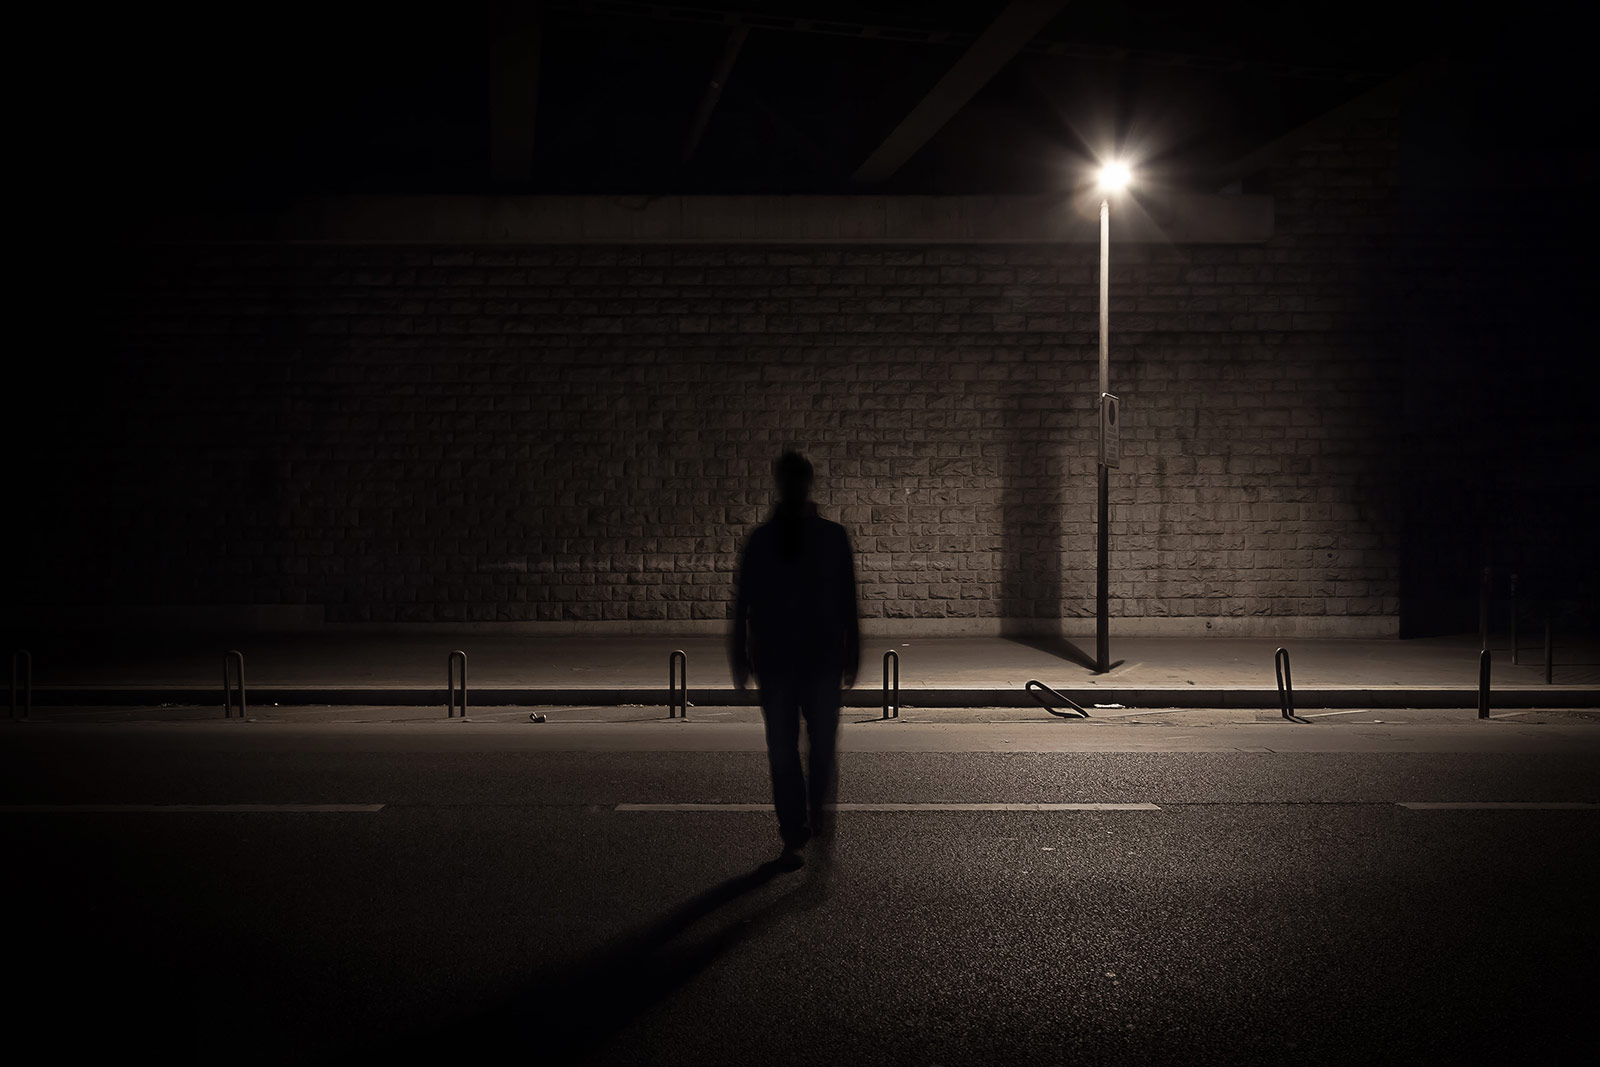 It comes at night- photographie de nuit